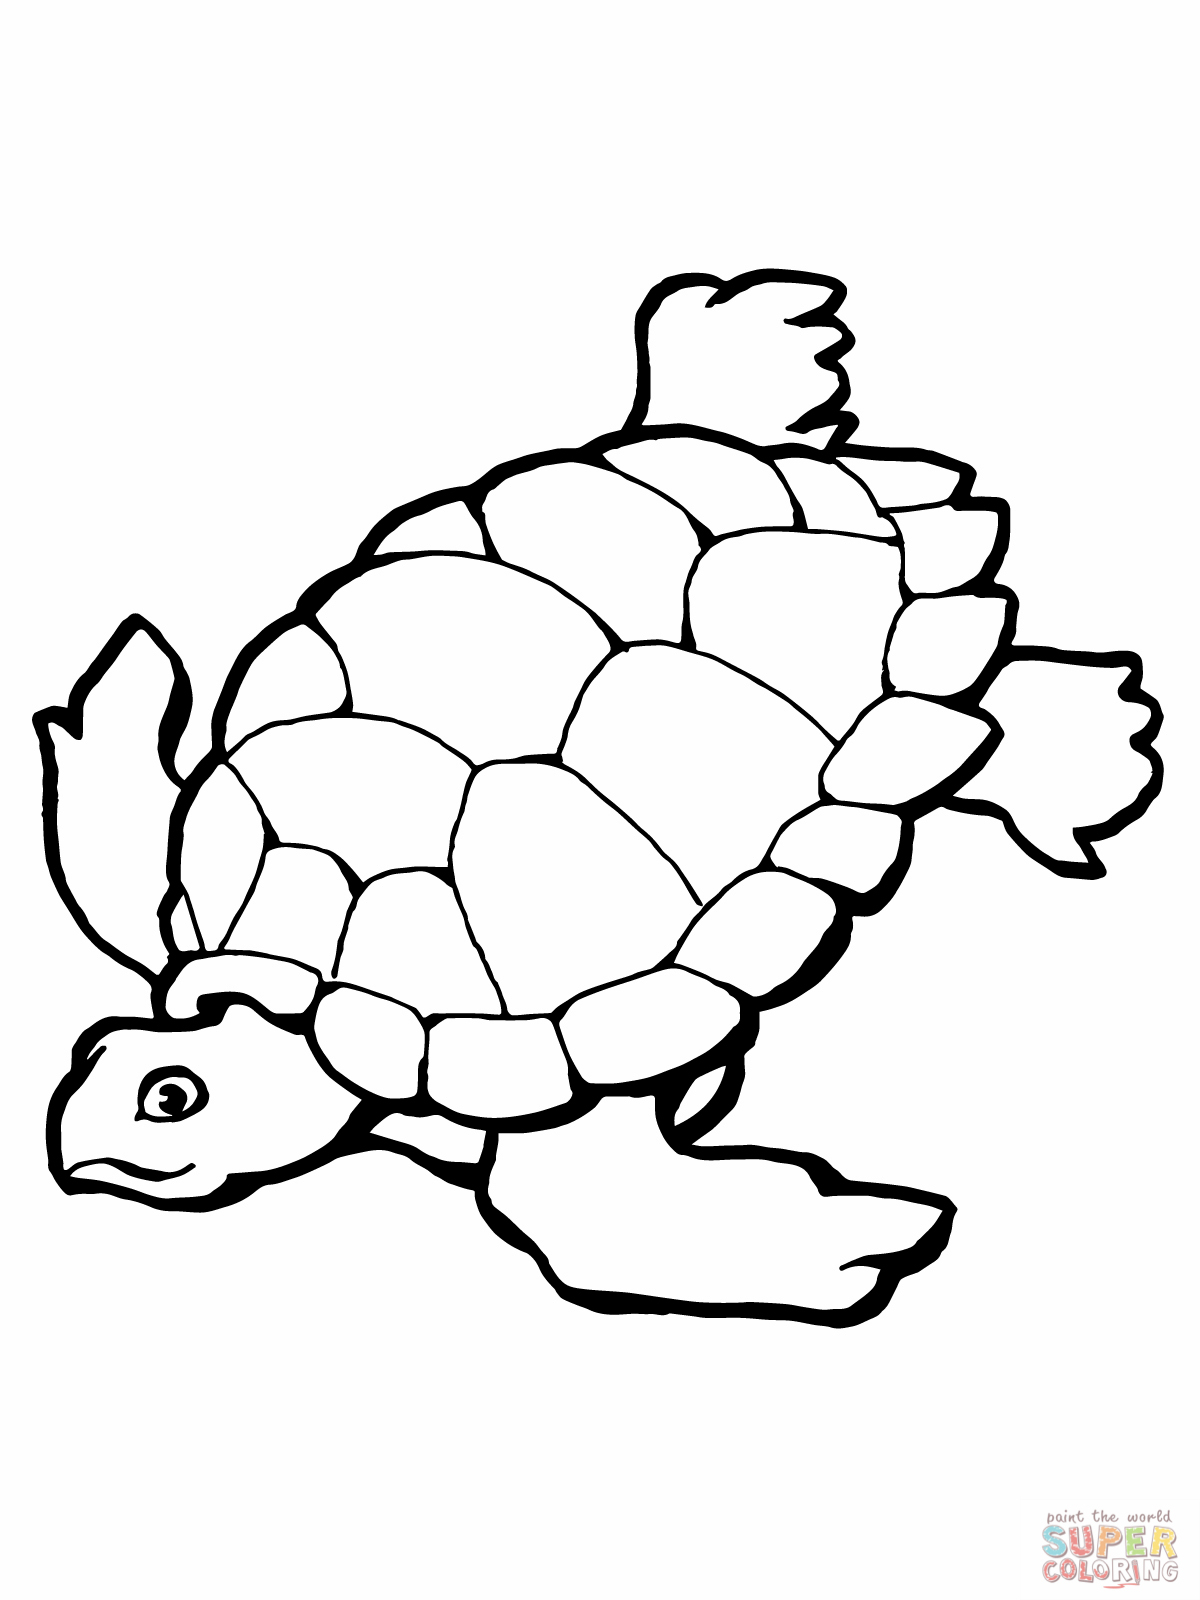 Turtle Coloring Pages For Preschoolers at GetDrawings.com ...